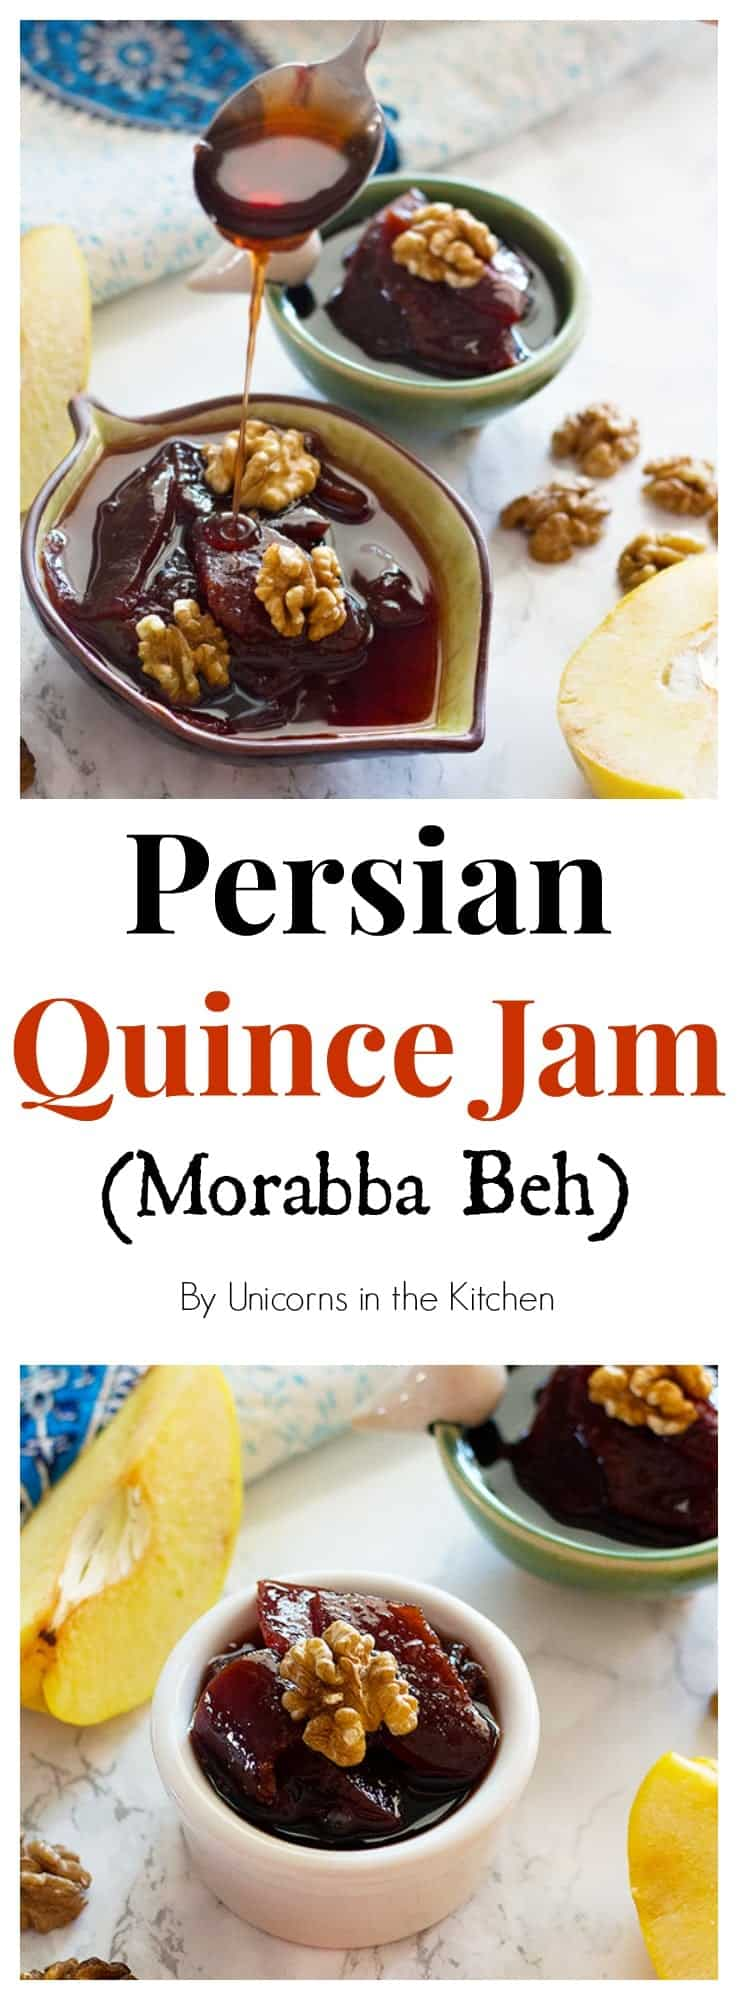 Persian quince jam - Morabba Beh is a traditional jam.This fragrant fruit gives you such delicious and tangy jam that you can use in your breakfast parfaits with fruit, or just have it with some bread!